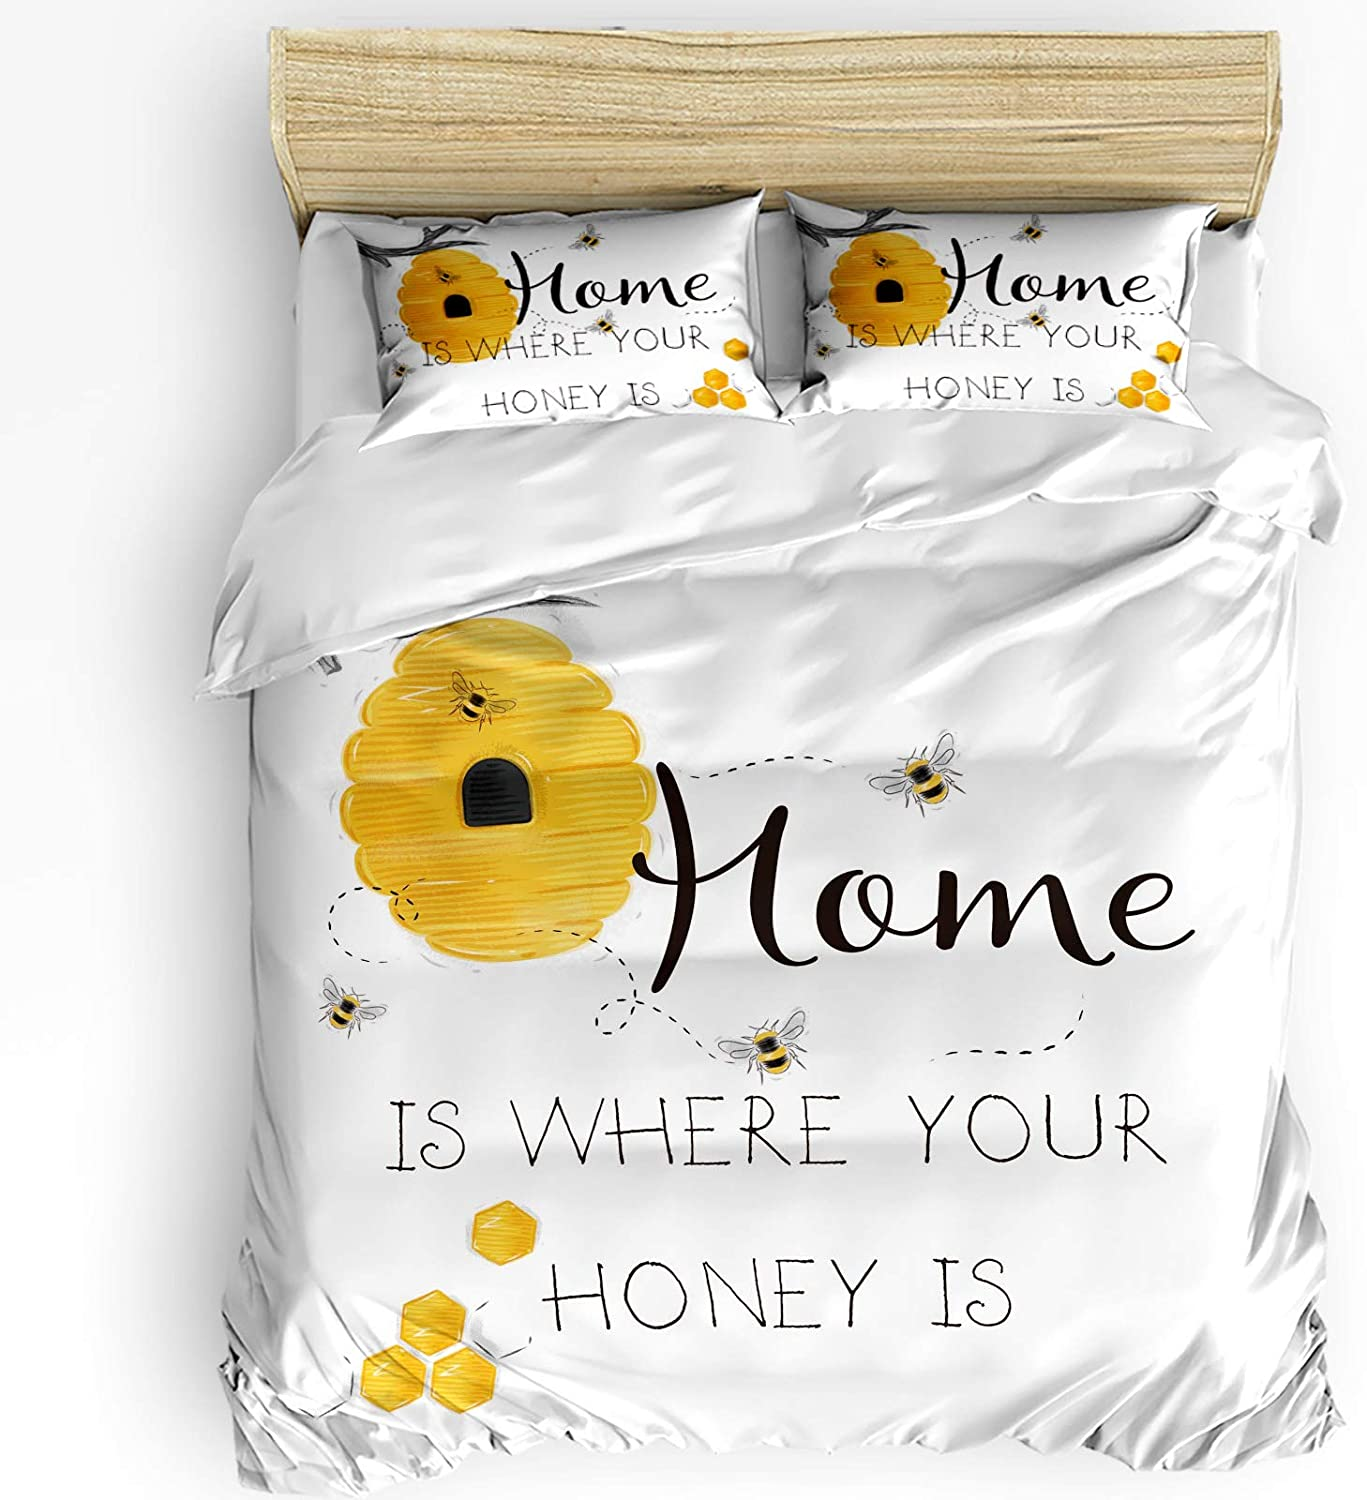 3 Pieces Soft Bedding Jacksonville Mall Set Home is 2021 spring and summer new Bee Your Honey Farm H Where